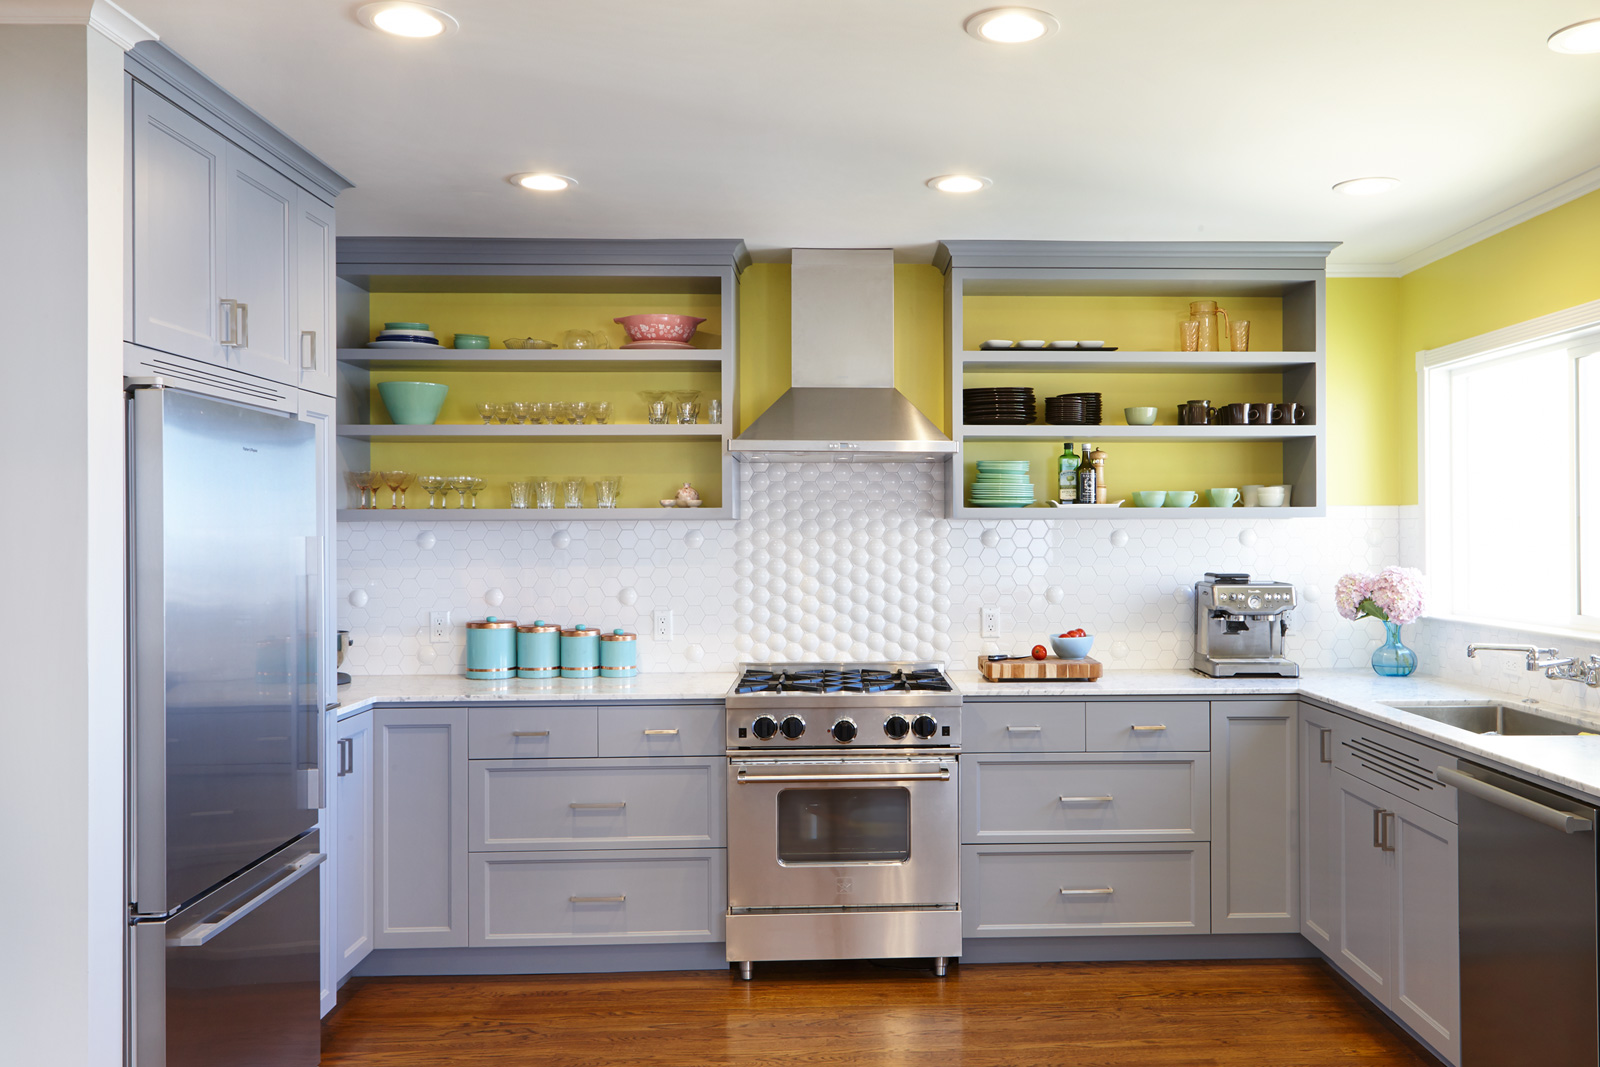 Best Paint For Kitchen Cabinets Paint For Kitchens - What paint to use on kitchen cabinets